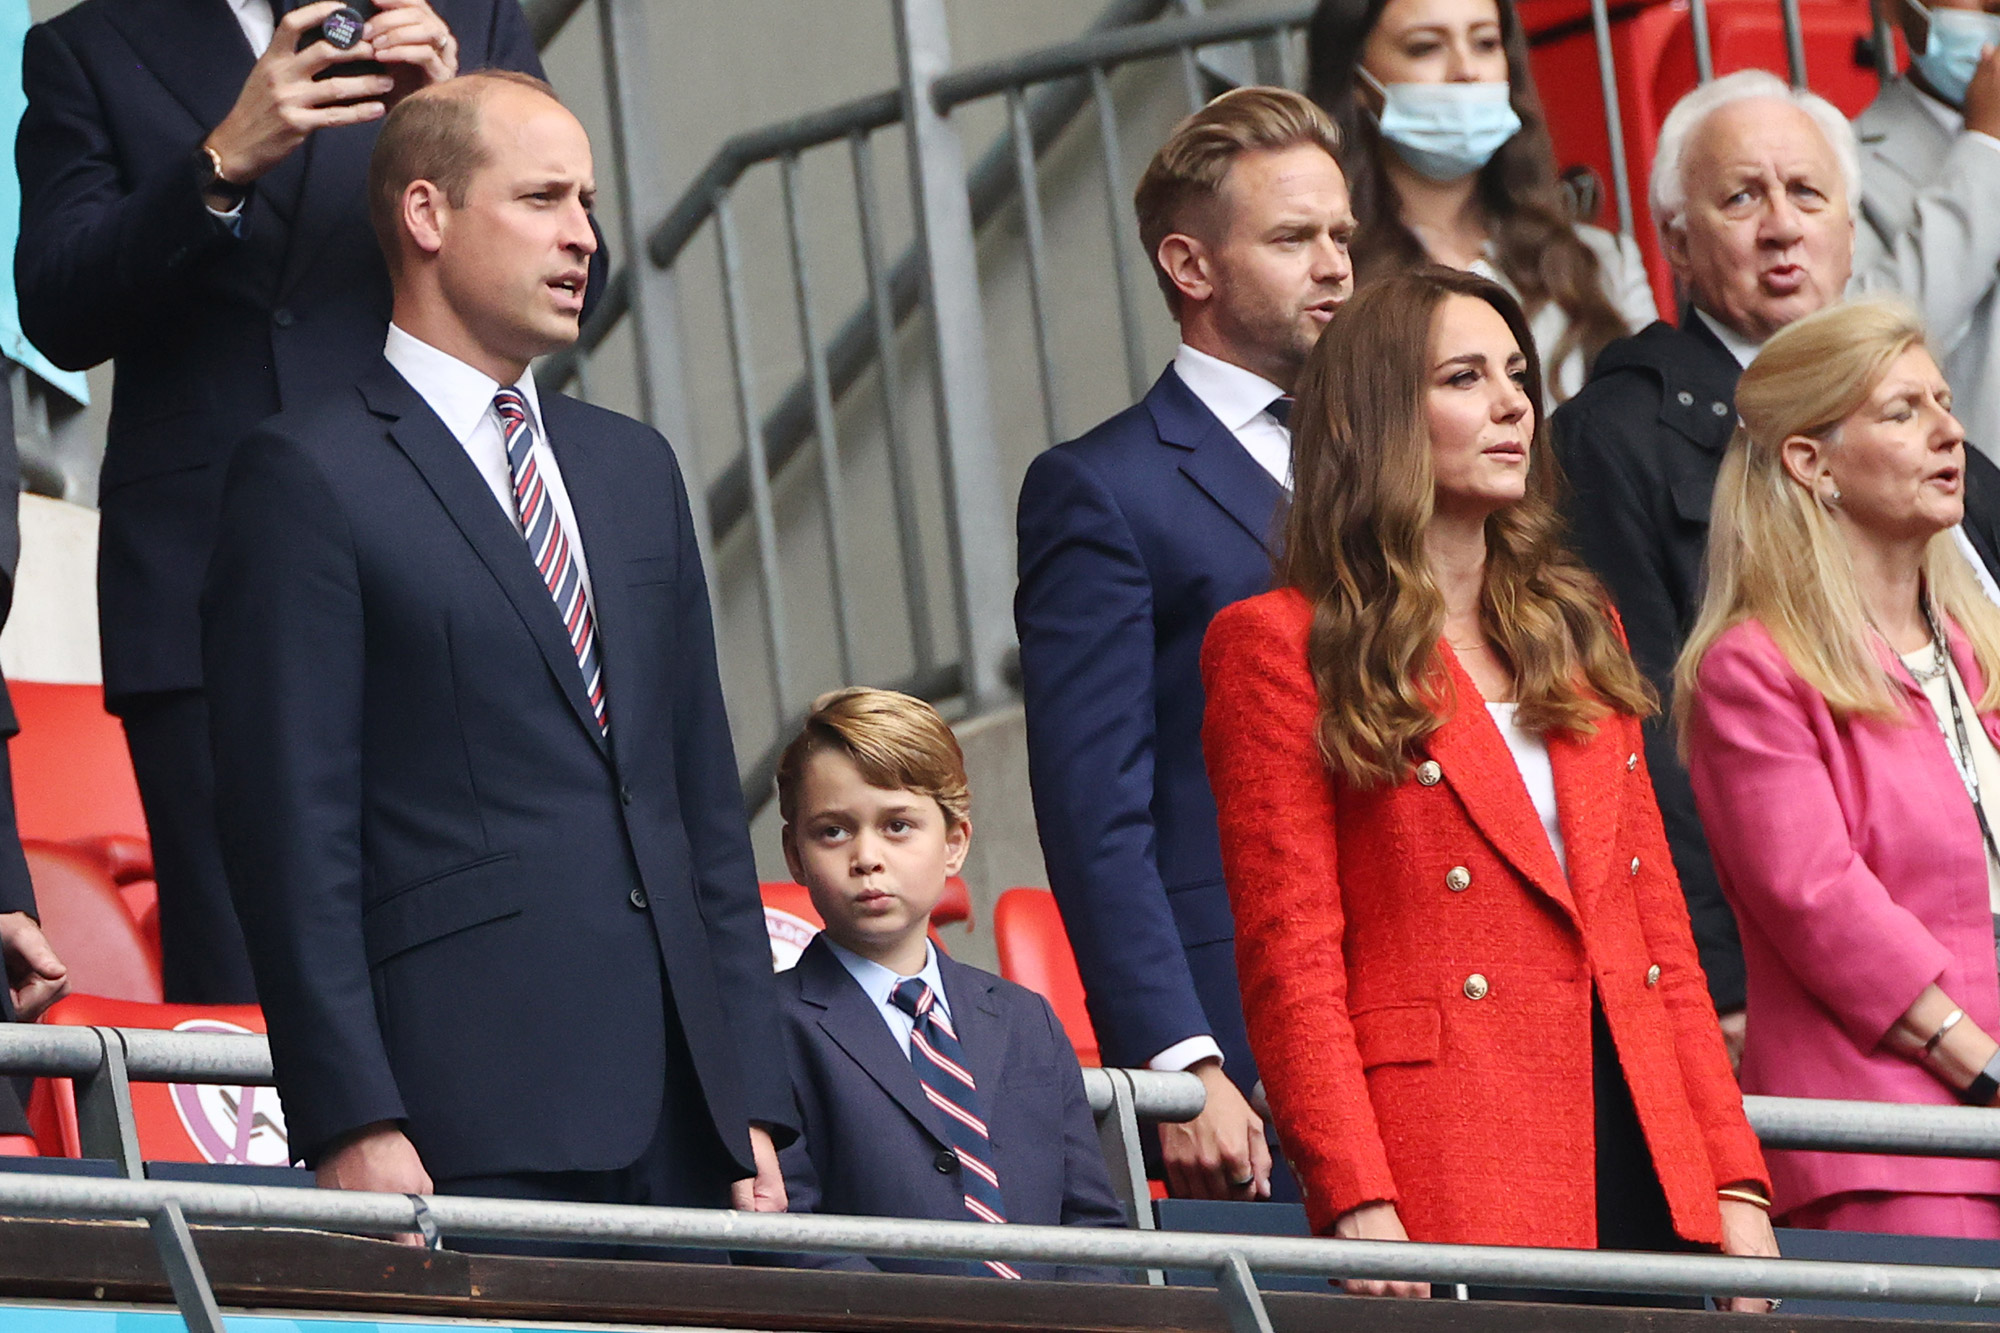 The British Prince William, Duke of Cambridge stands with his wife Kate, Duchess of Cambridge, and their son Prince George in the stands